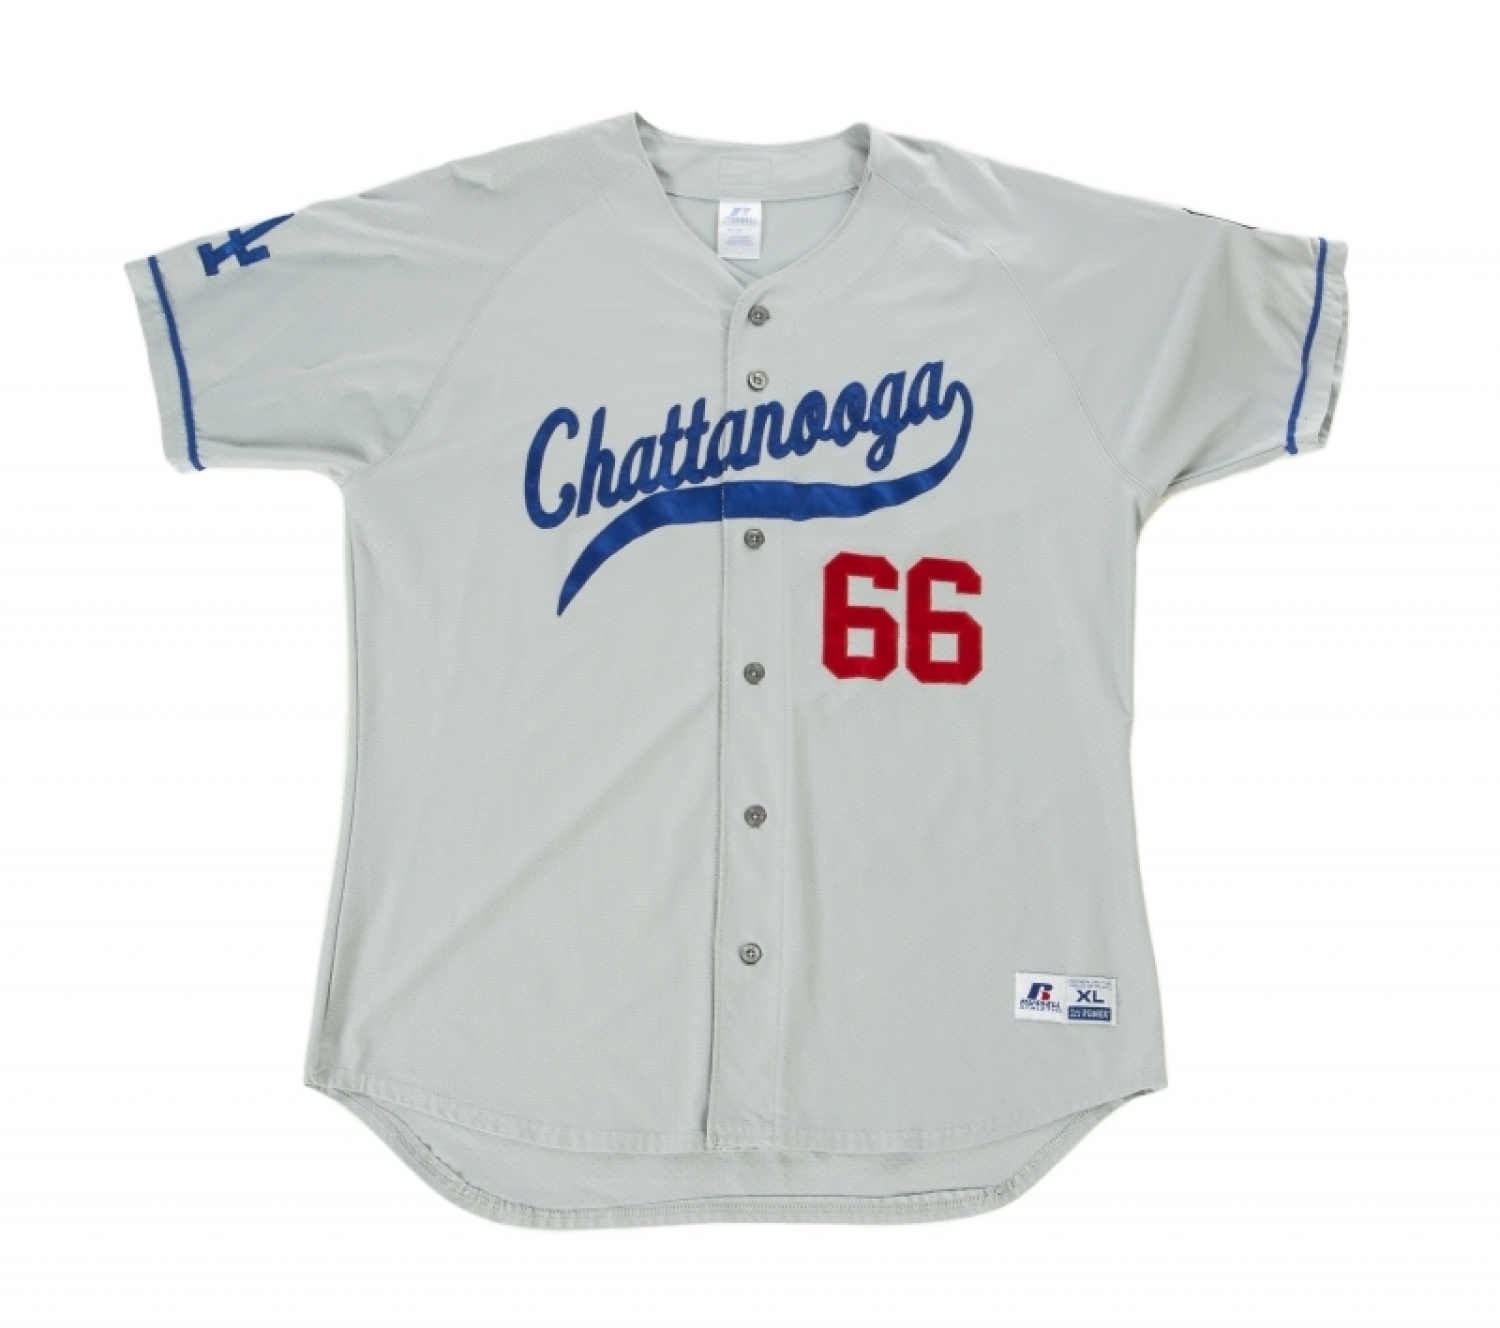 89b8ec841 YASIEL PUIG 2013 CHATTANOOGA LOOKOUTS GAME WORN ROAD JERSEY - Current  price   250